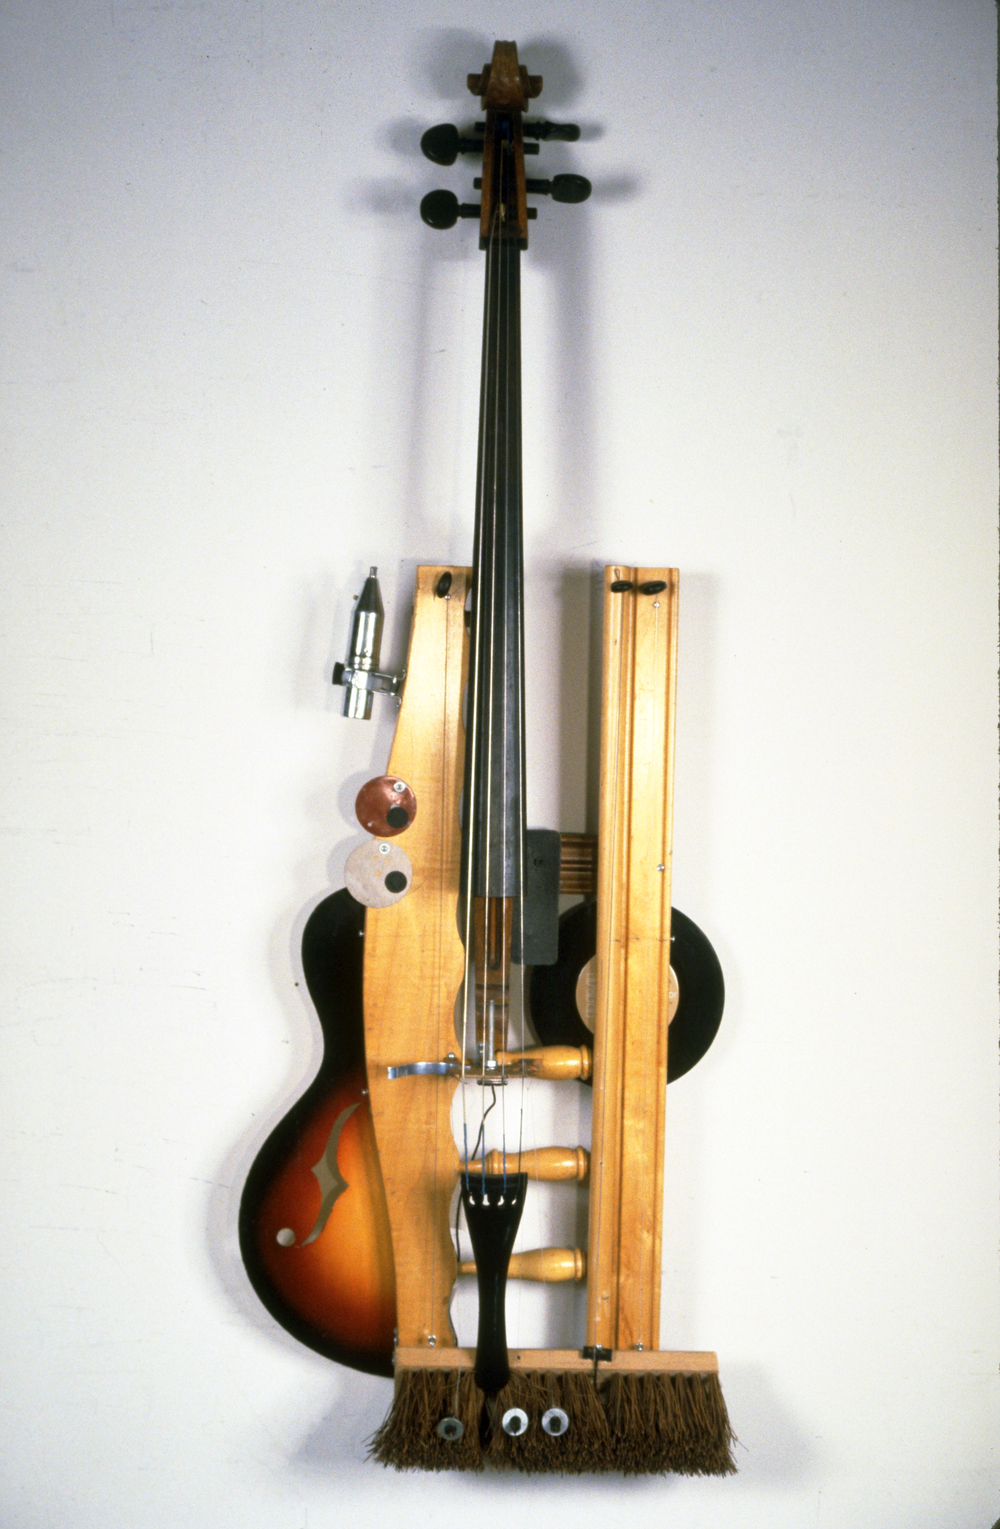 Pushbroom Cello.jpg